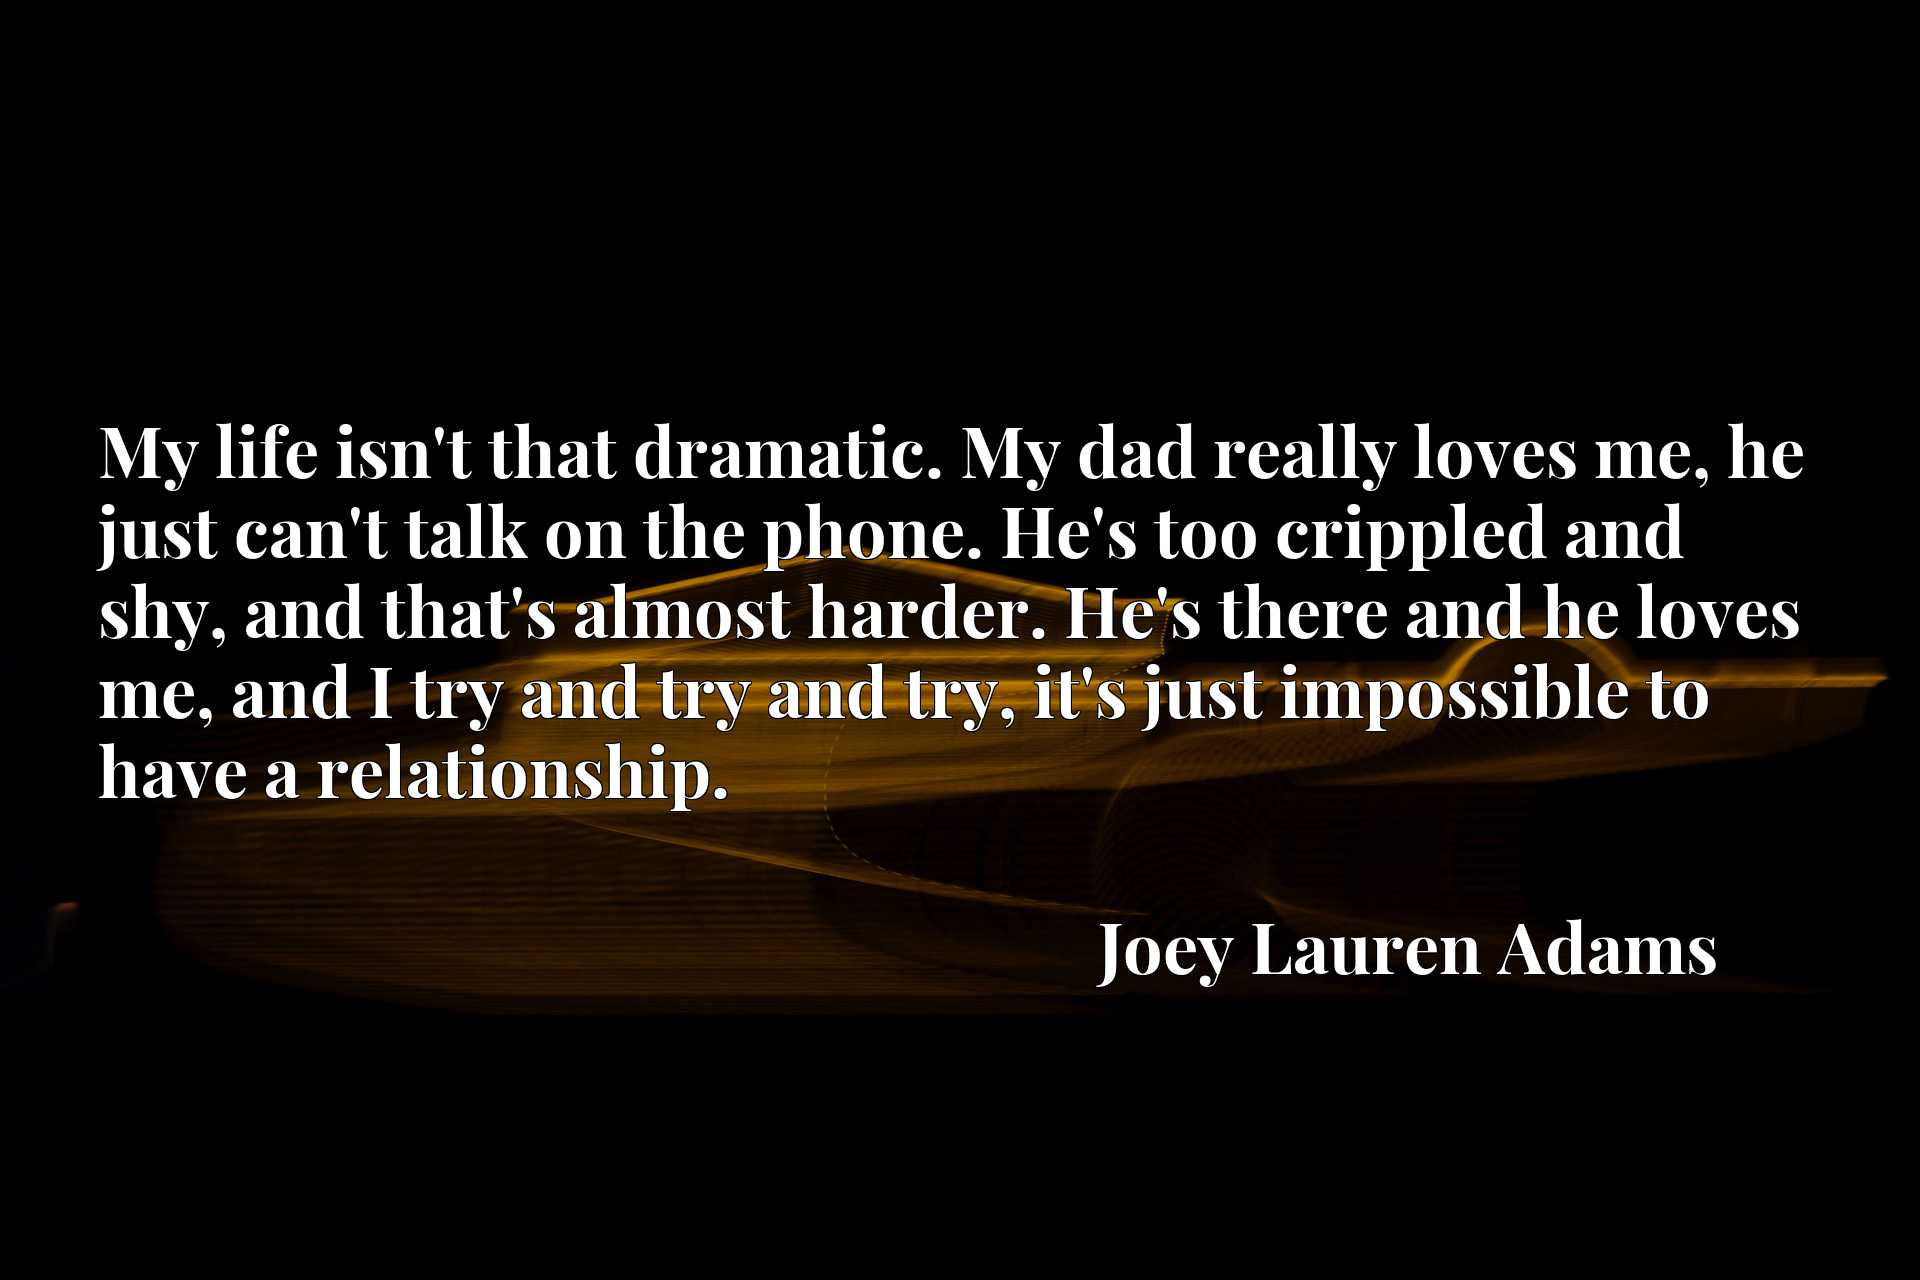 My life isn't that dramatic. My dad really loves me, he just can't talk on the phone. He's too crippled and shy, and that's almost harder. He's there and he loves me, and I try and try and try, it's just impossible to have a relationship.